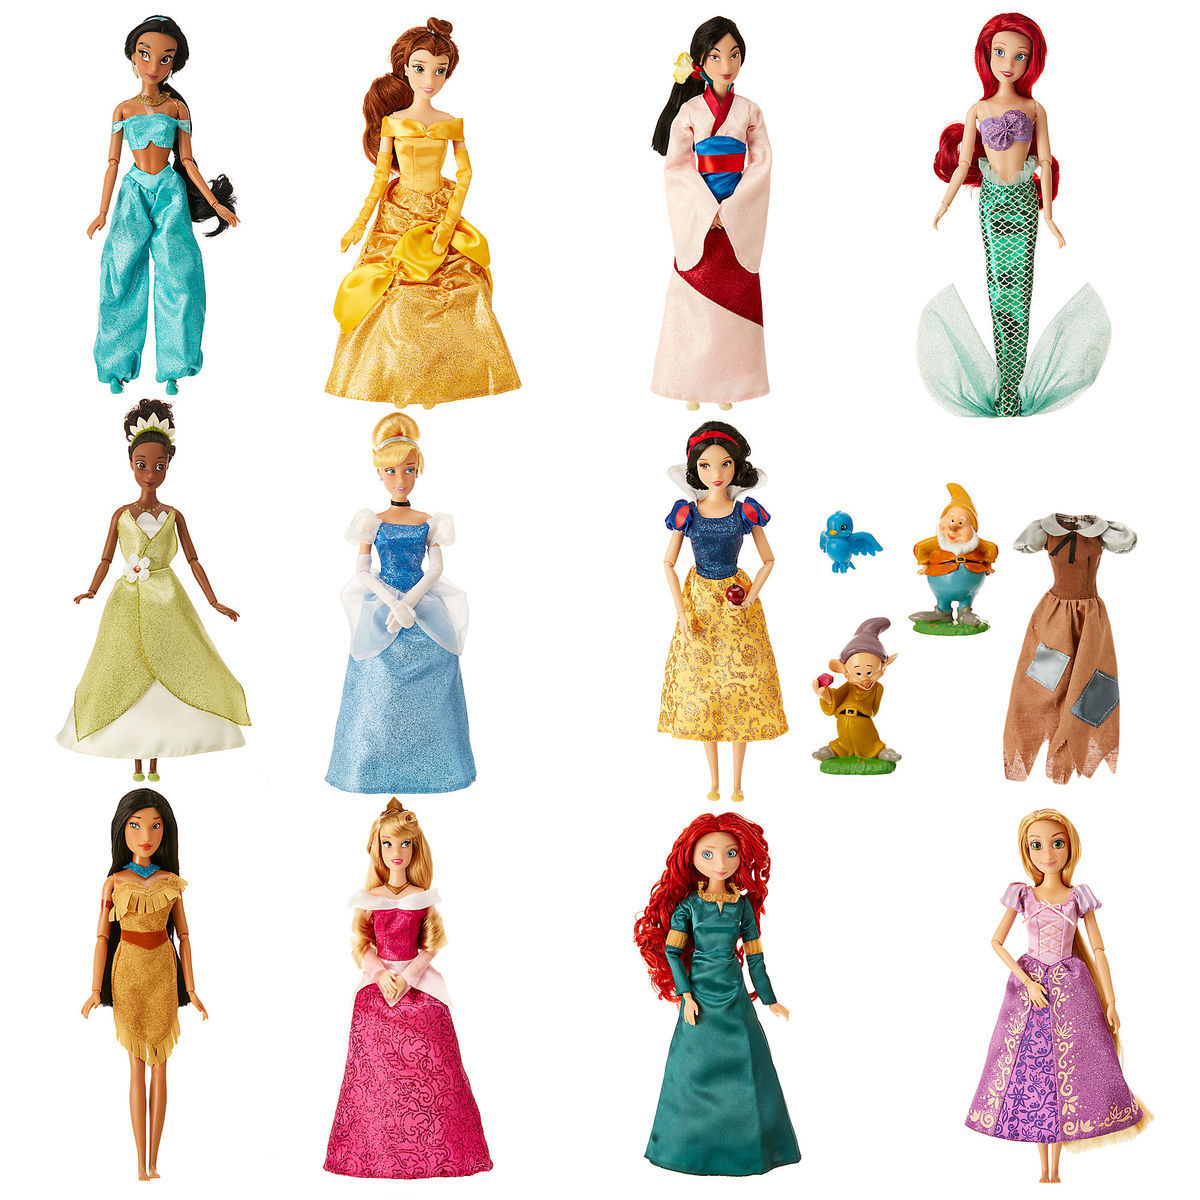 disney princess classic doll collection gift set | shopdisney